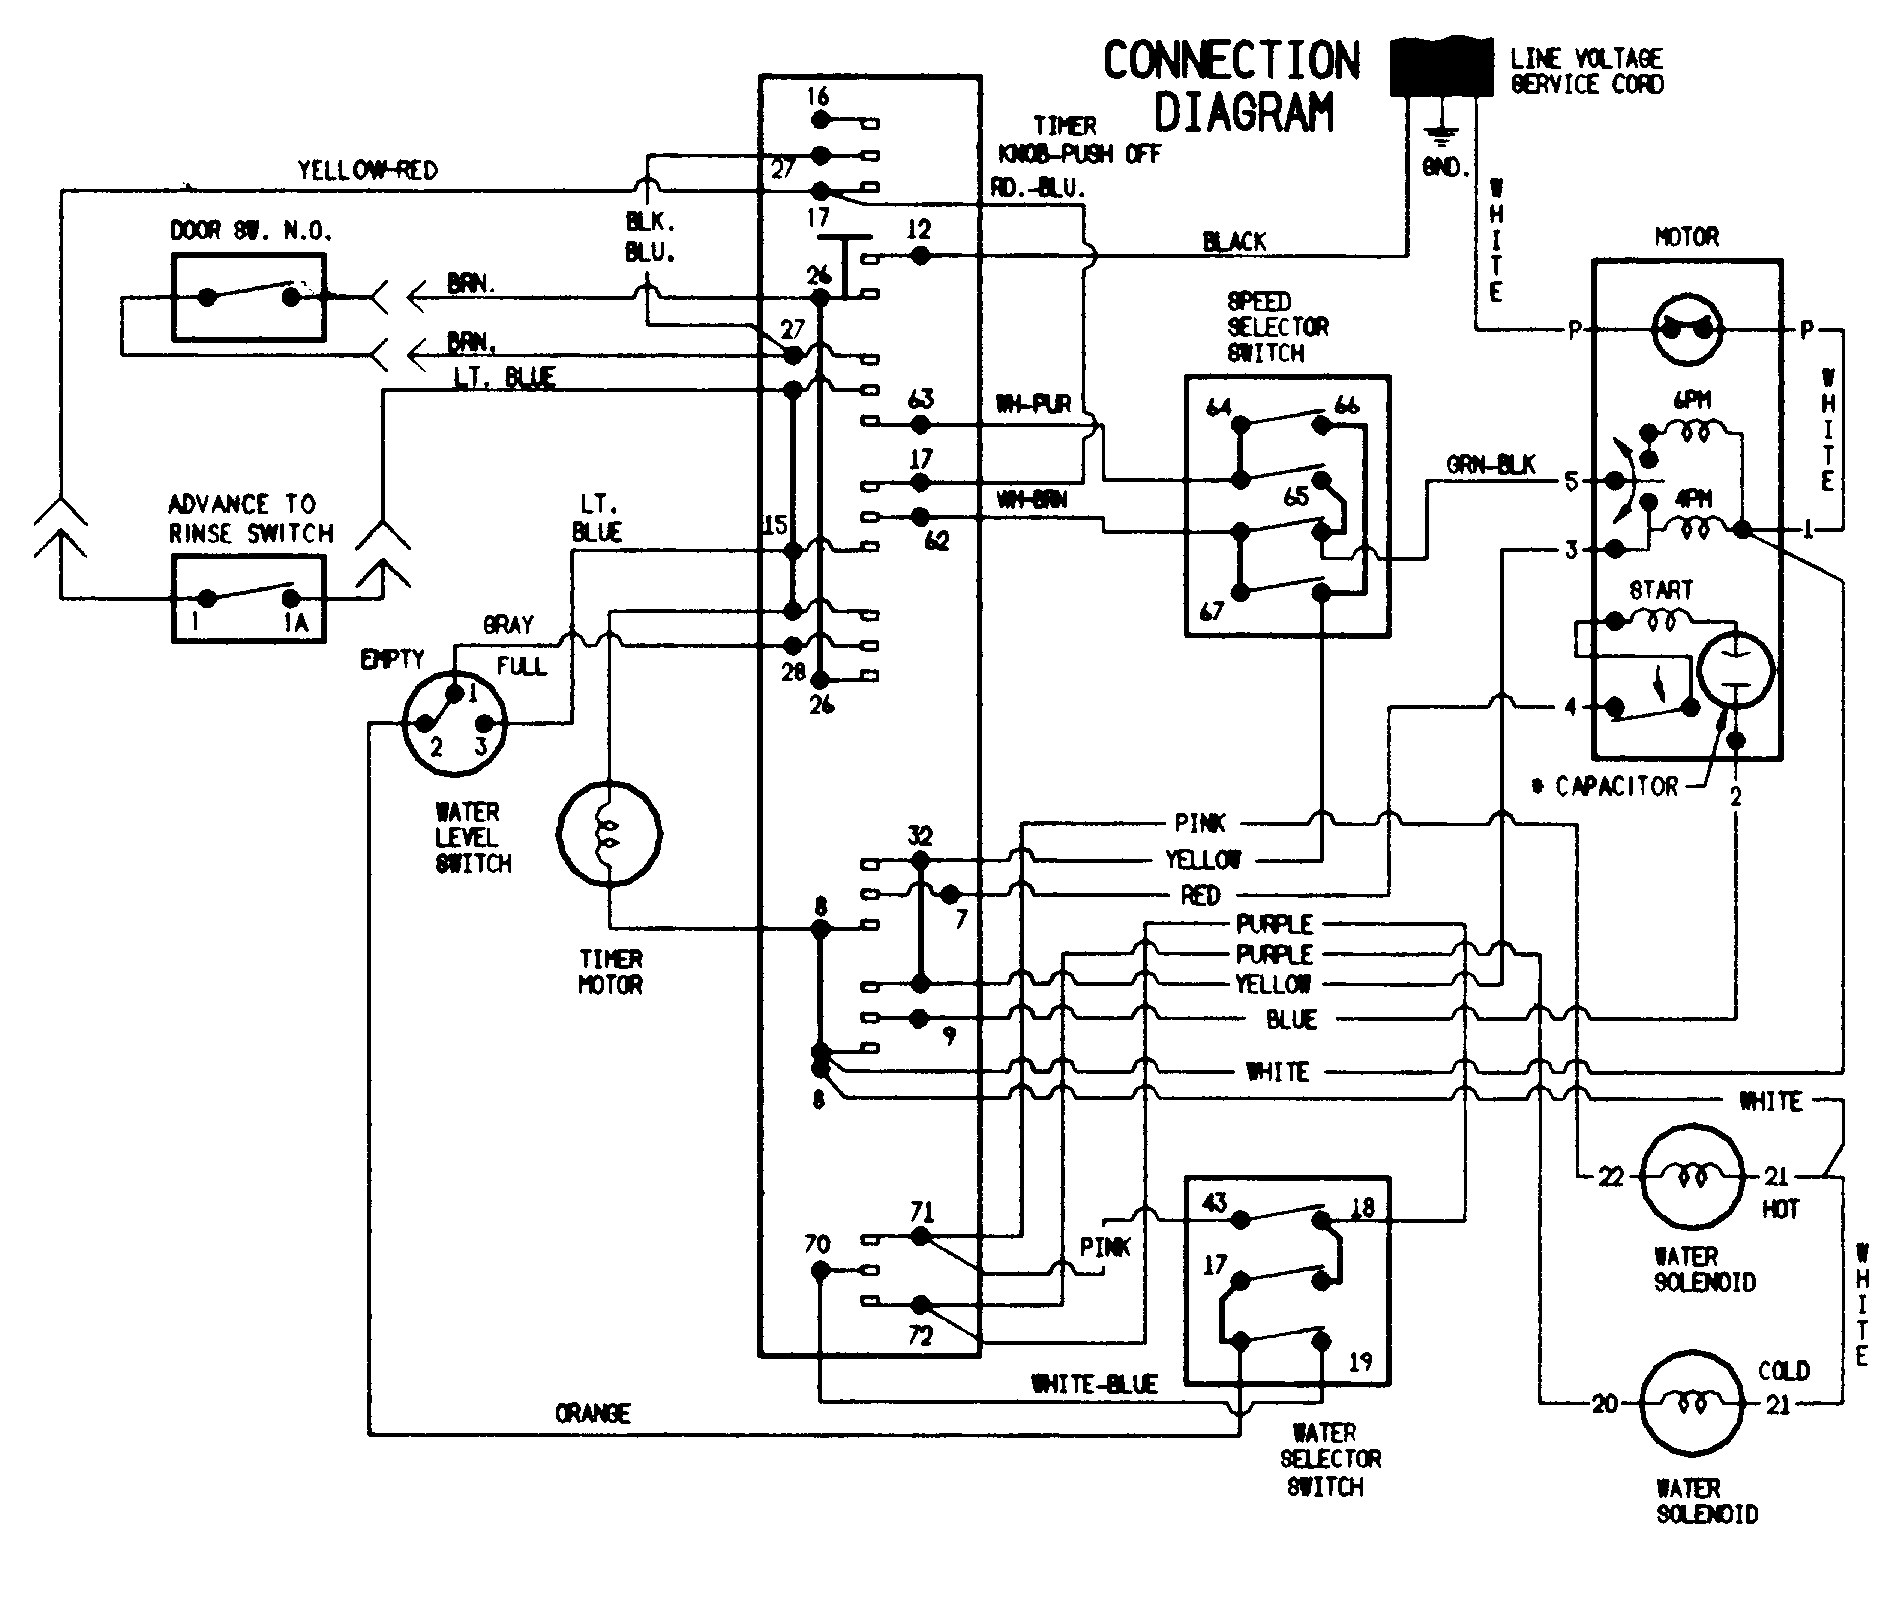 wiring diagram of washing machine timer furthermore whirlpool washer Washing Machine Timer Circuit Diagram